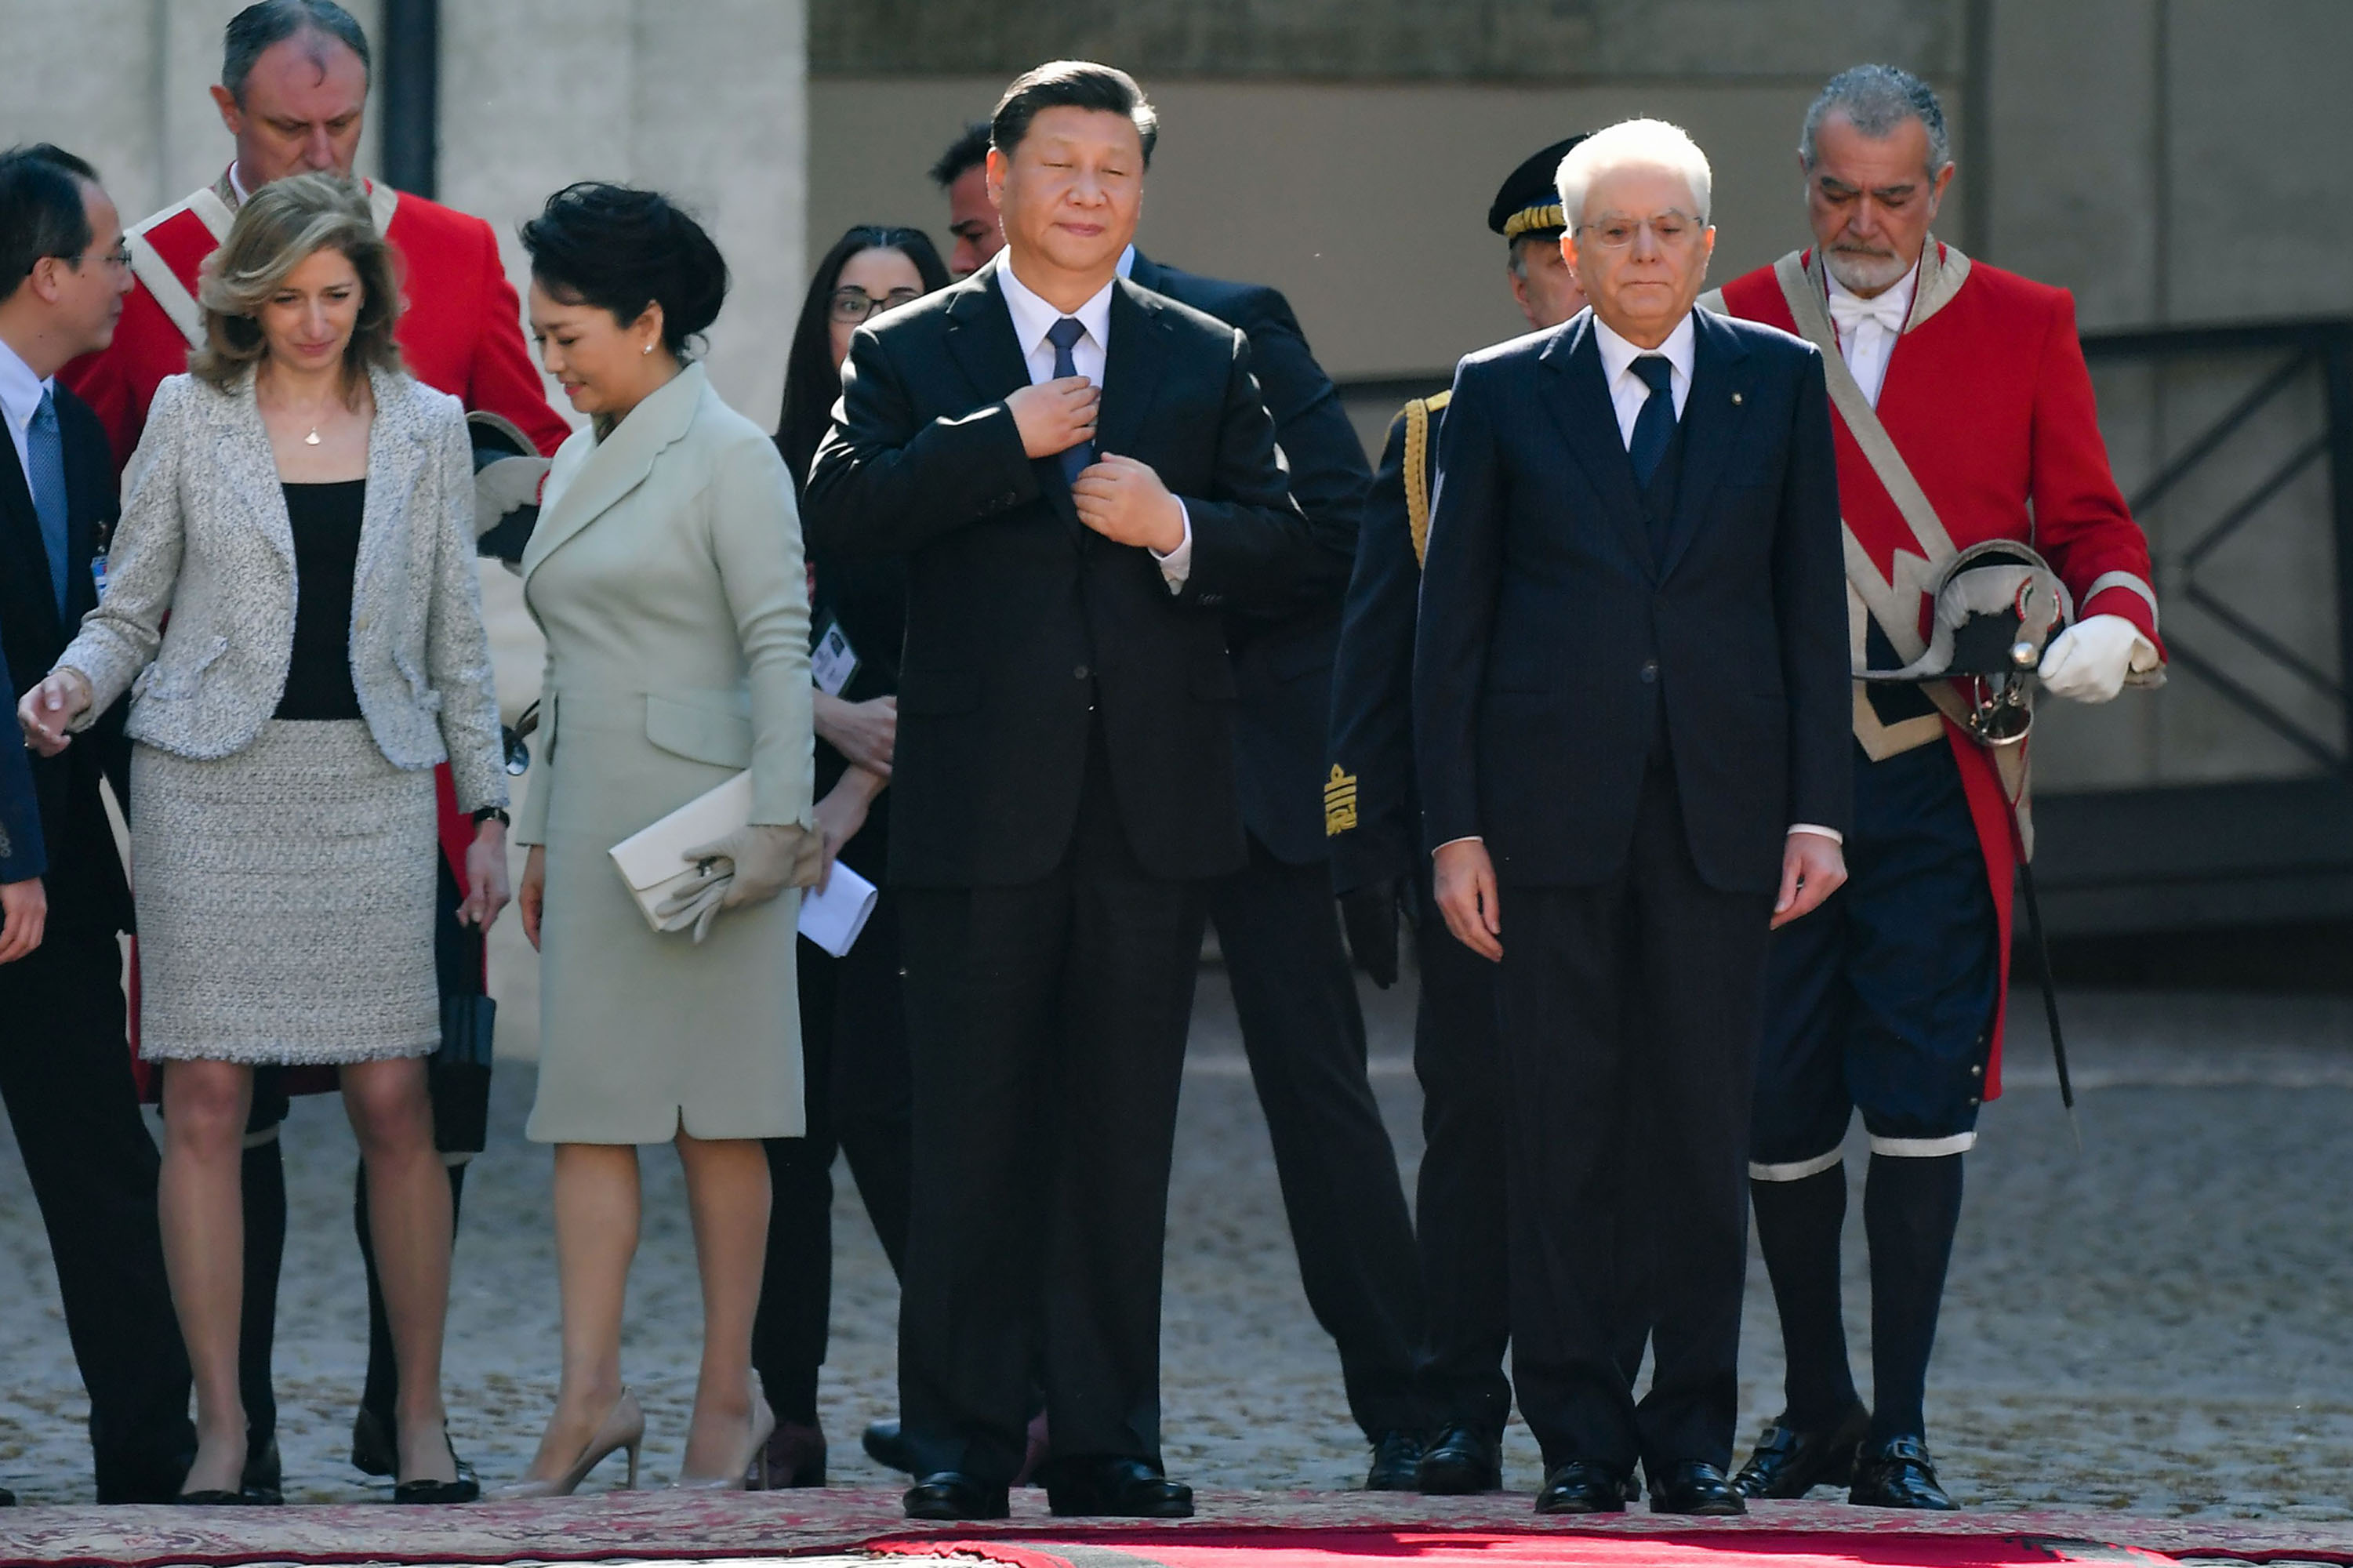 bloomberg.com - John Follain - Italy Welcomes Xi With Honors Fit for Monarchs